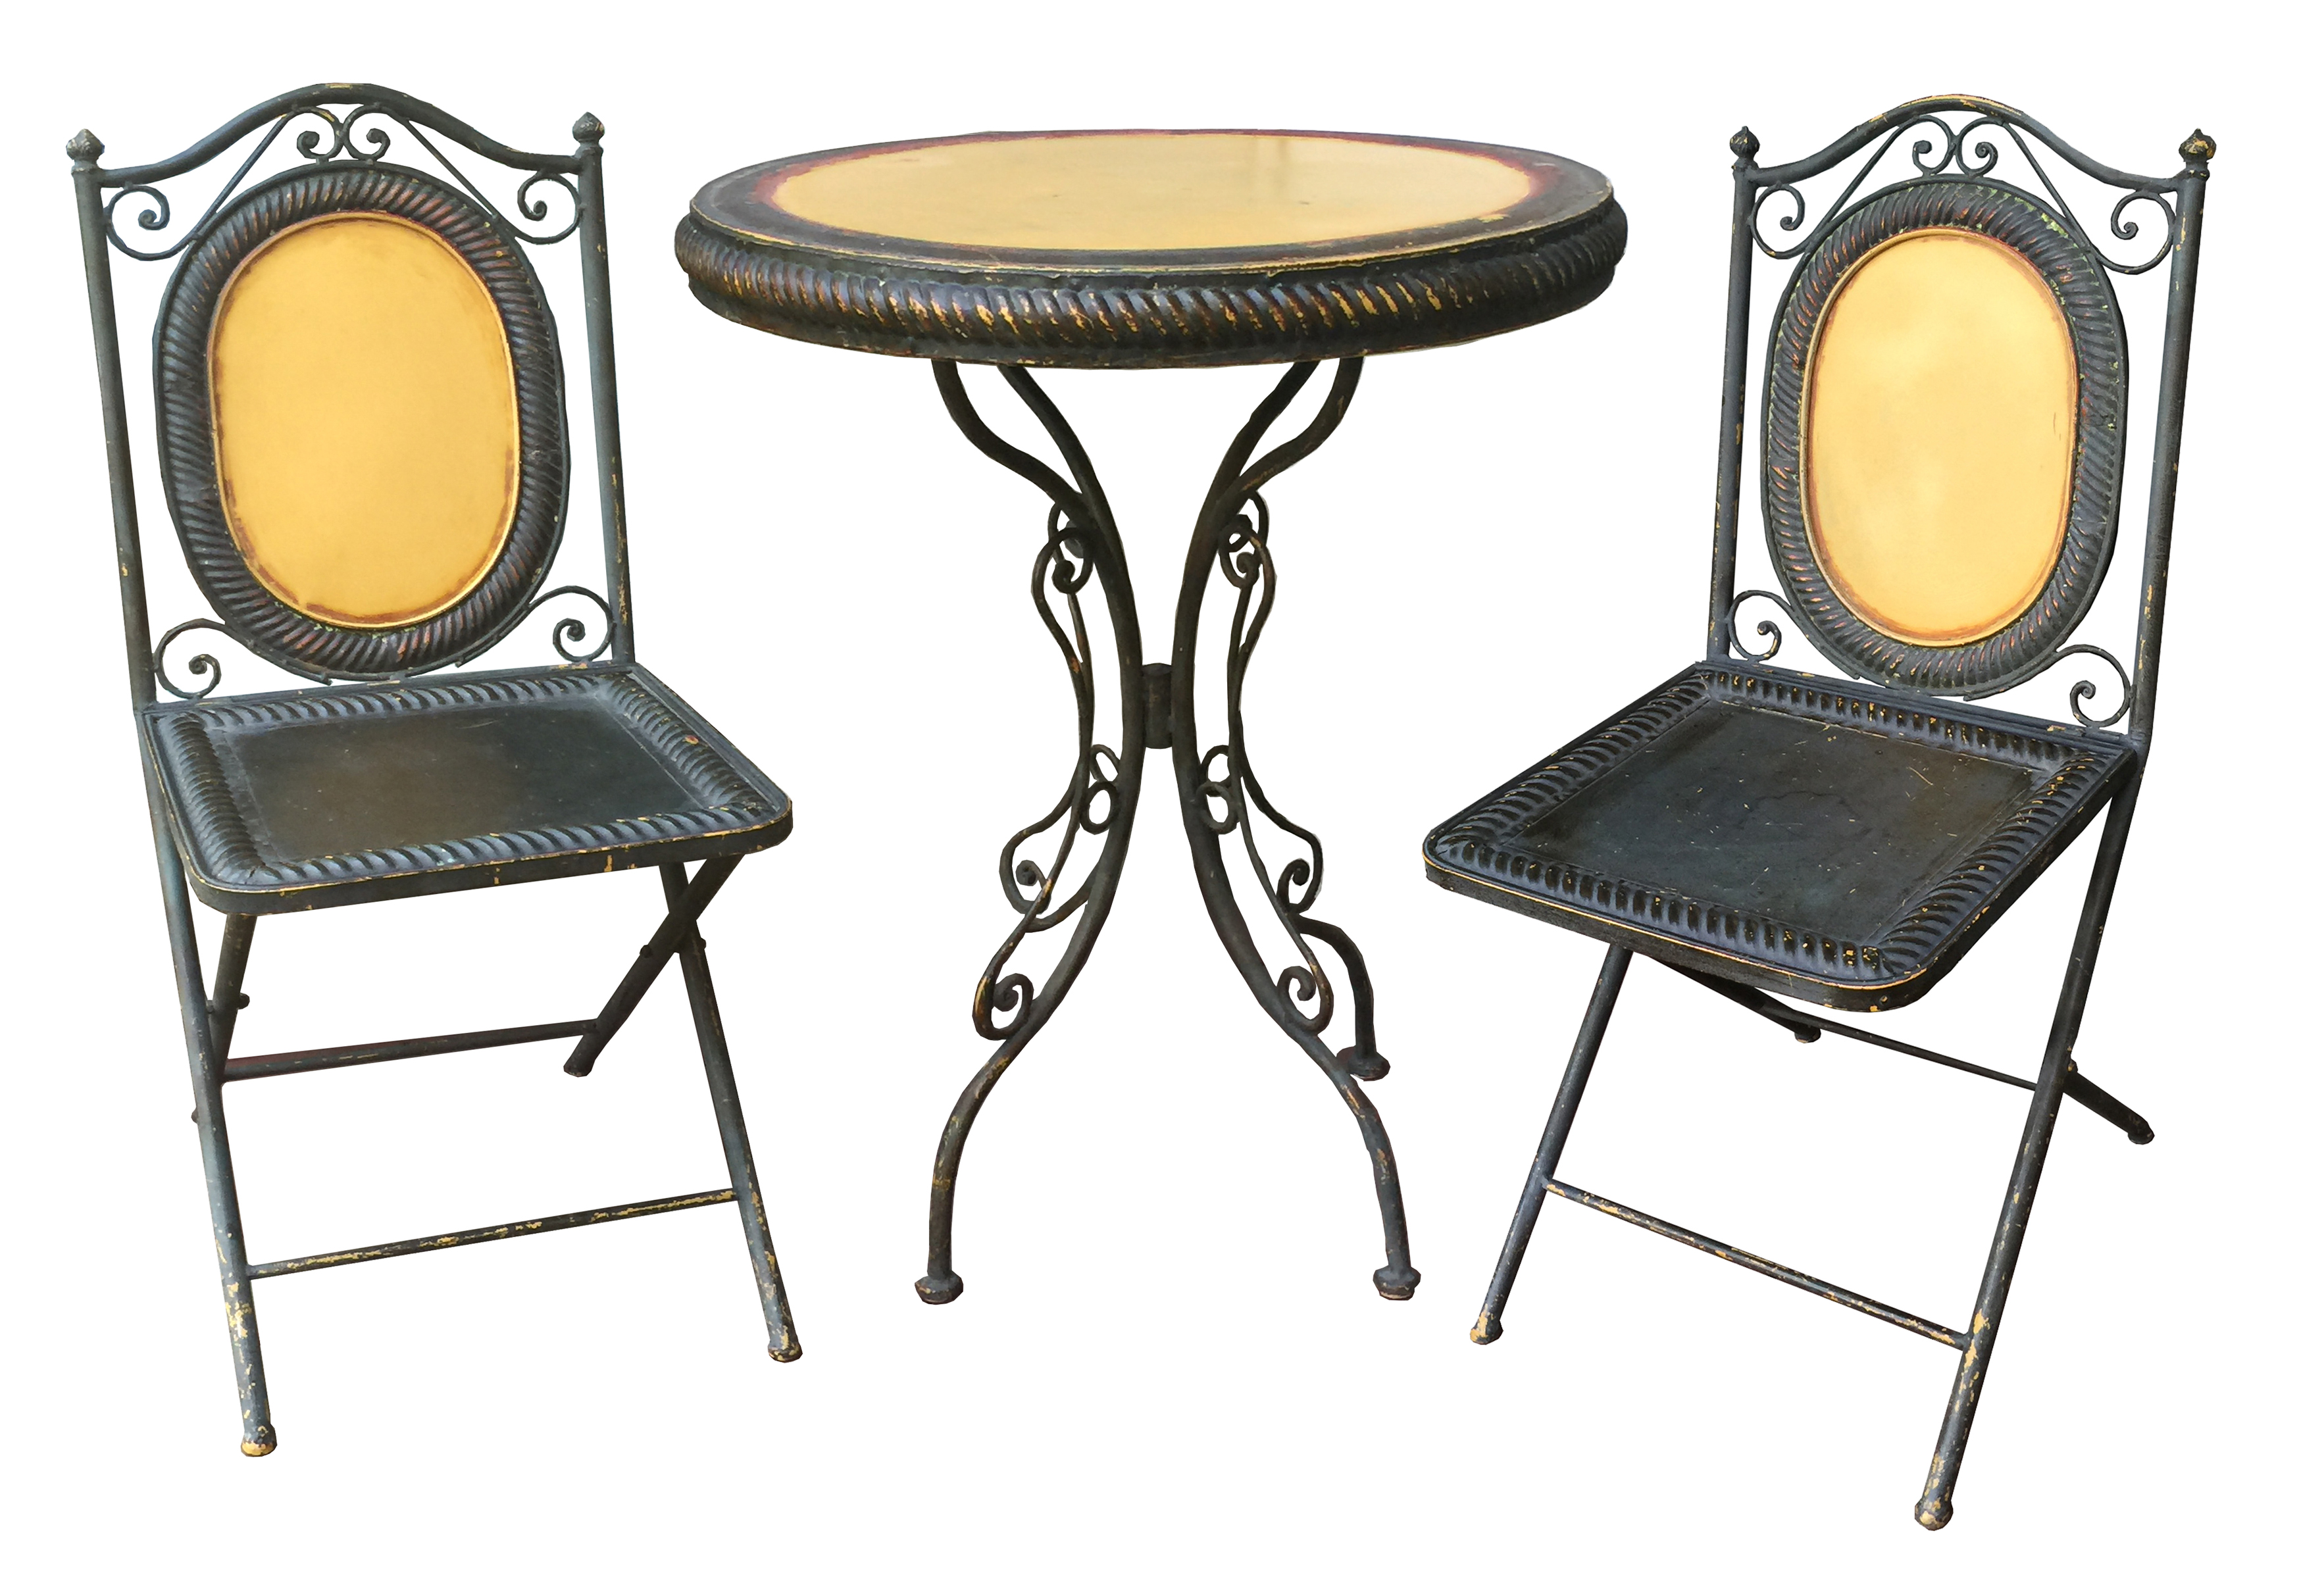 Cafe table and chairs png - Image Of 1920s Parisian Cafe Set